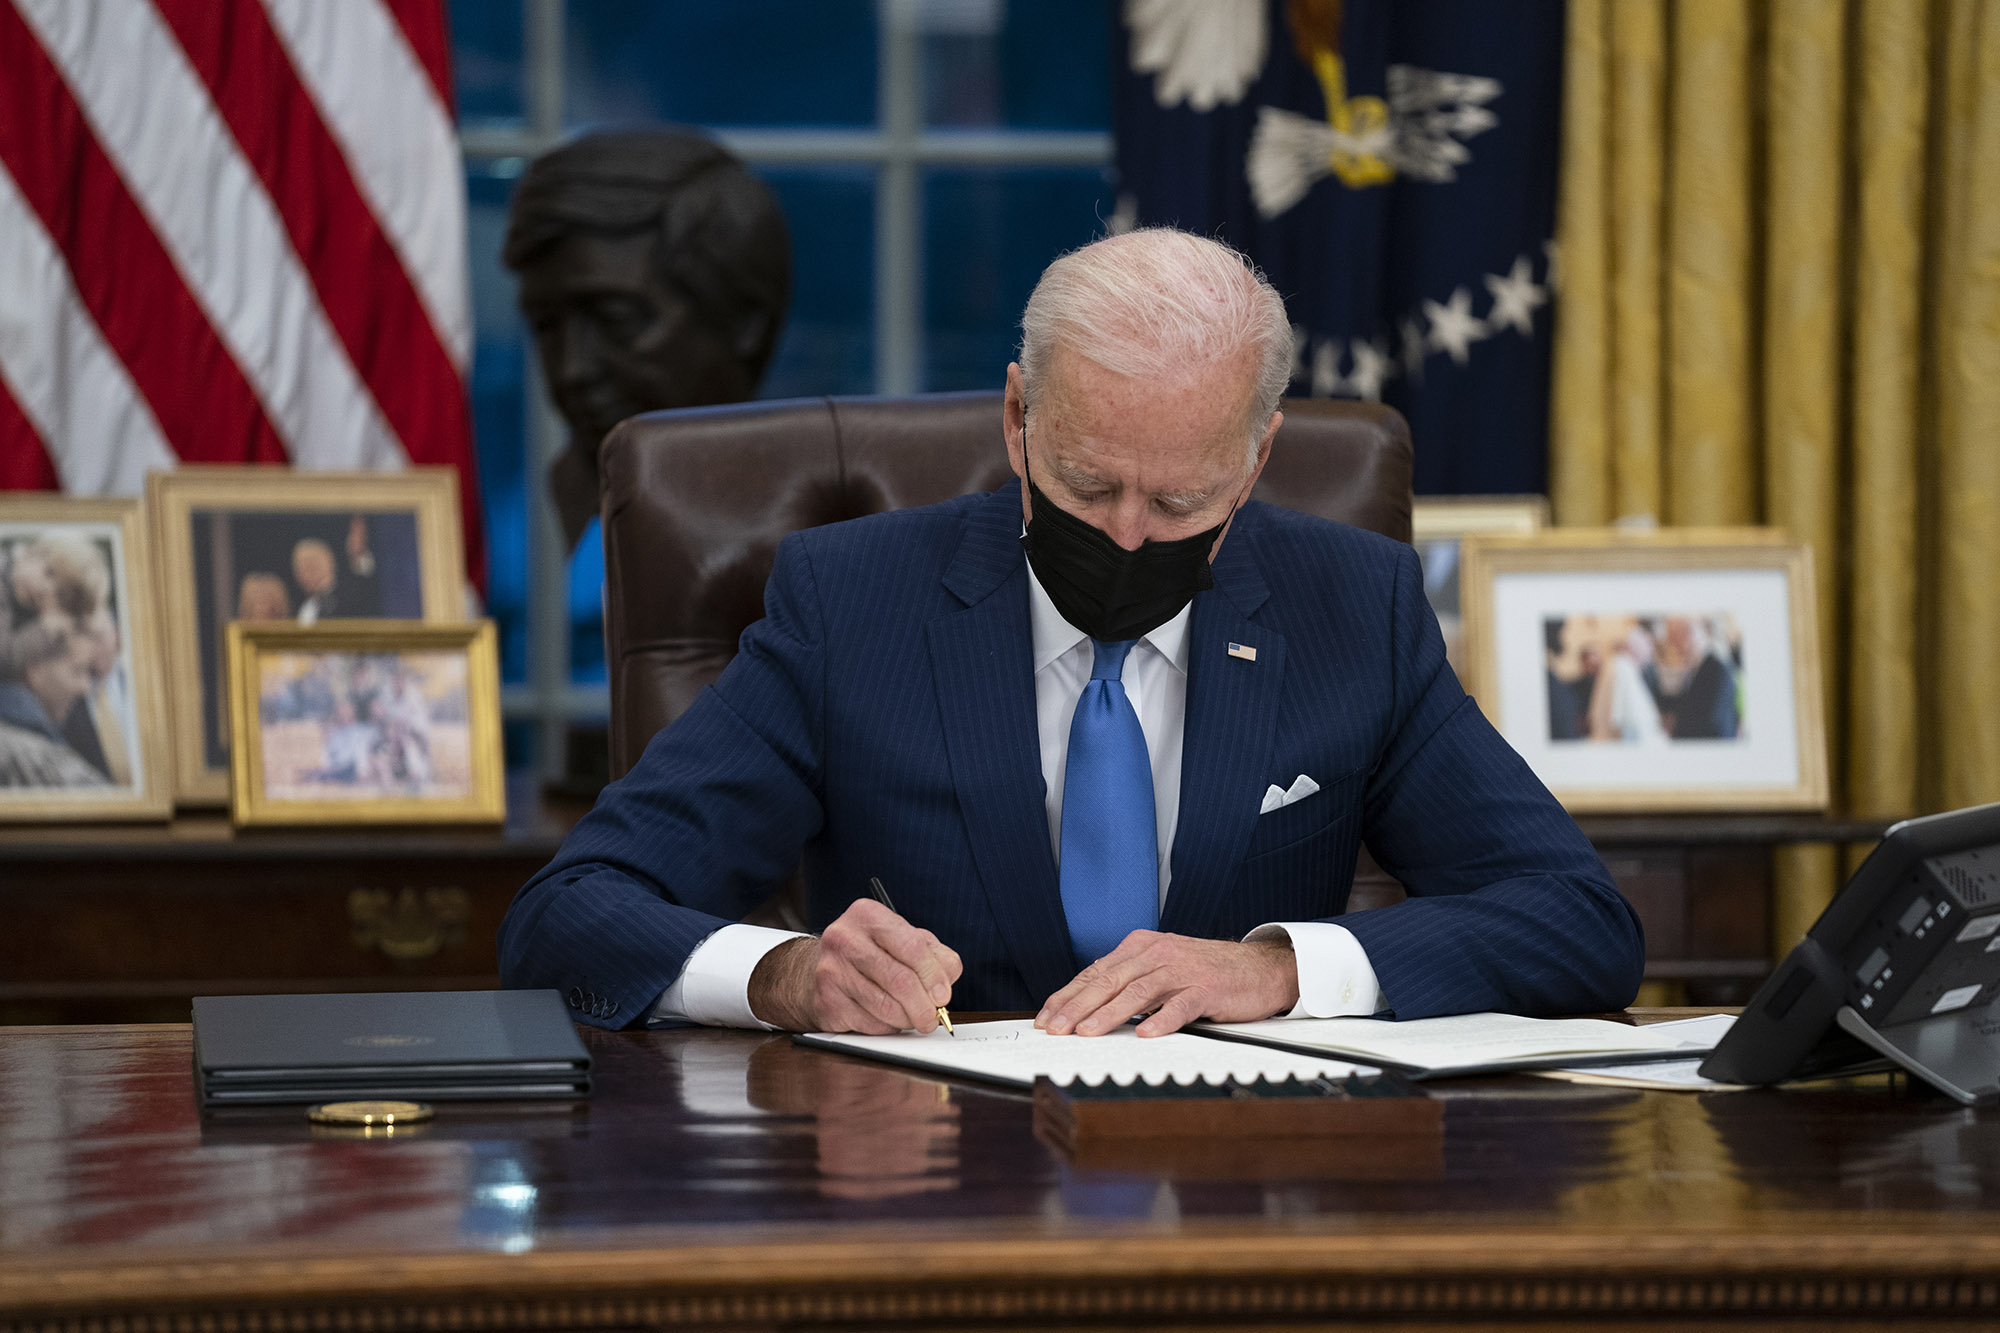 President Joe Biden signs an executive order on immigration, in the Oval Office of the White House on Tuesday, February 2, in Washington, DC.